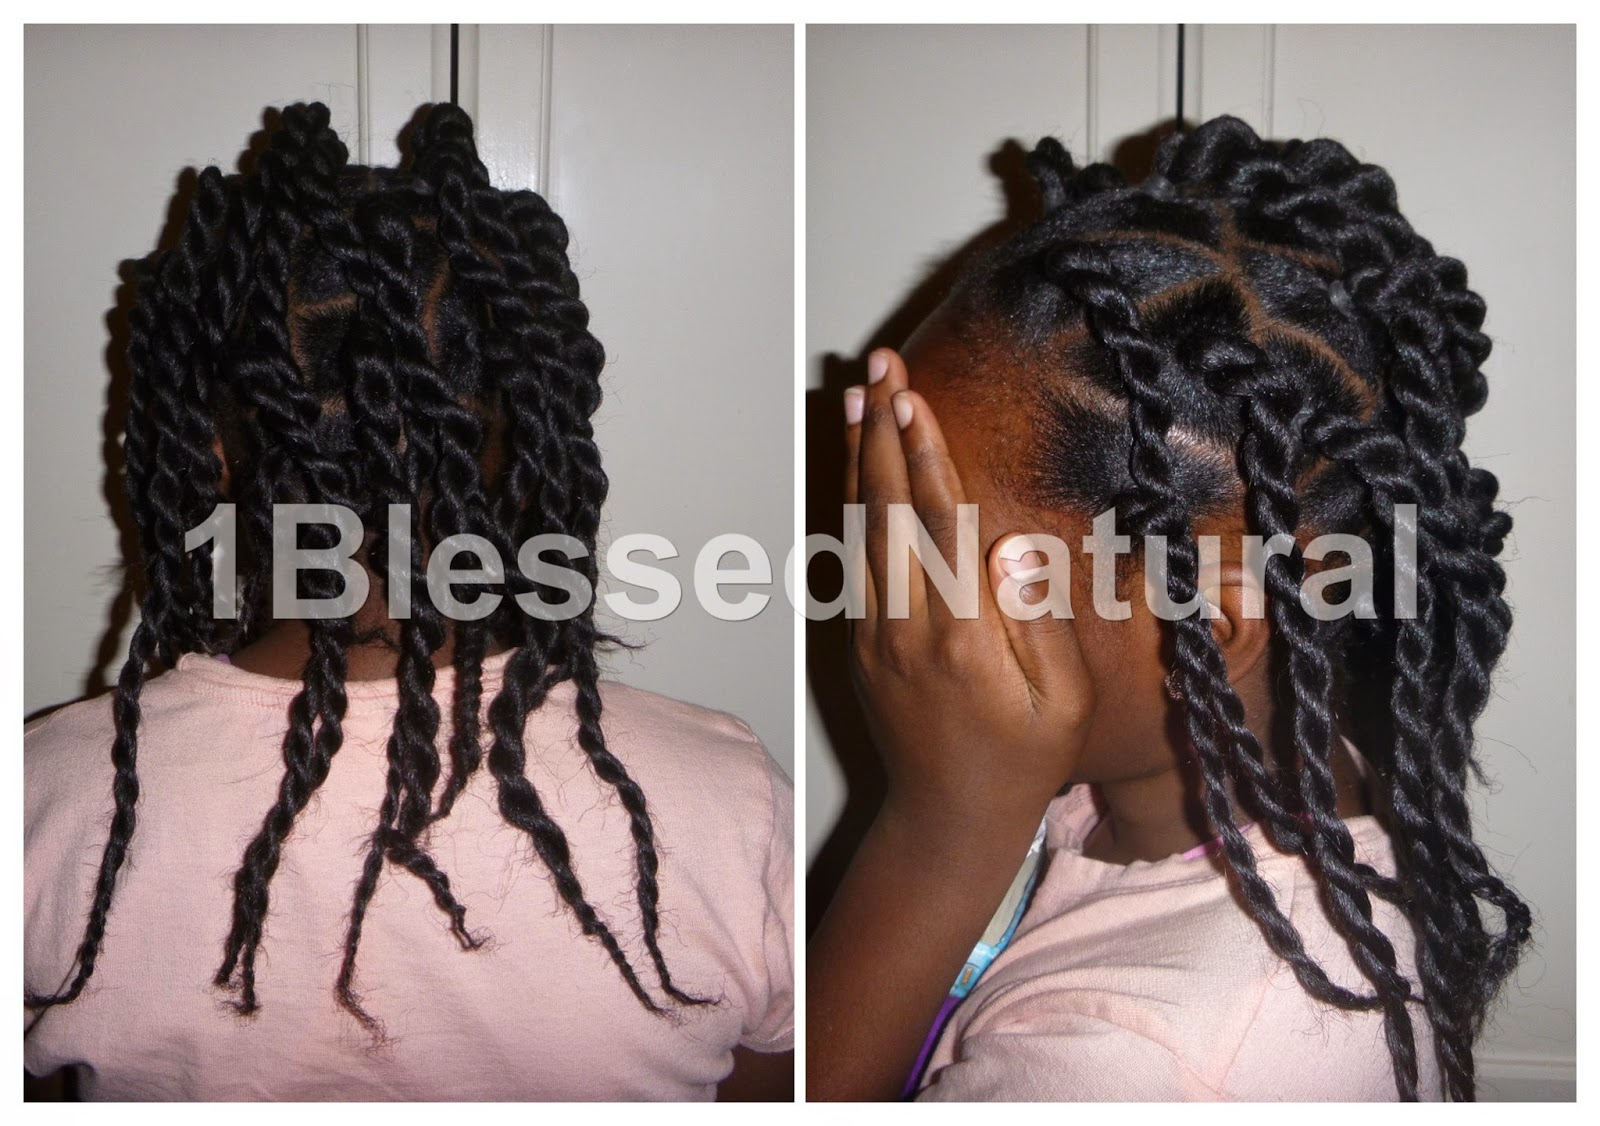 1blessednatural: Big Sister Natural's Rubber Band (twostrand) Twists